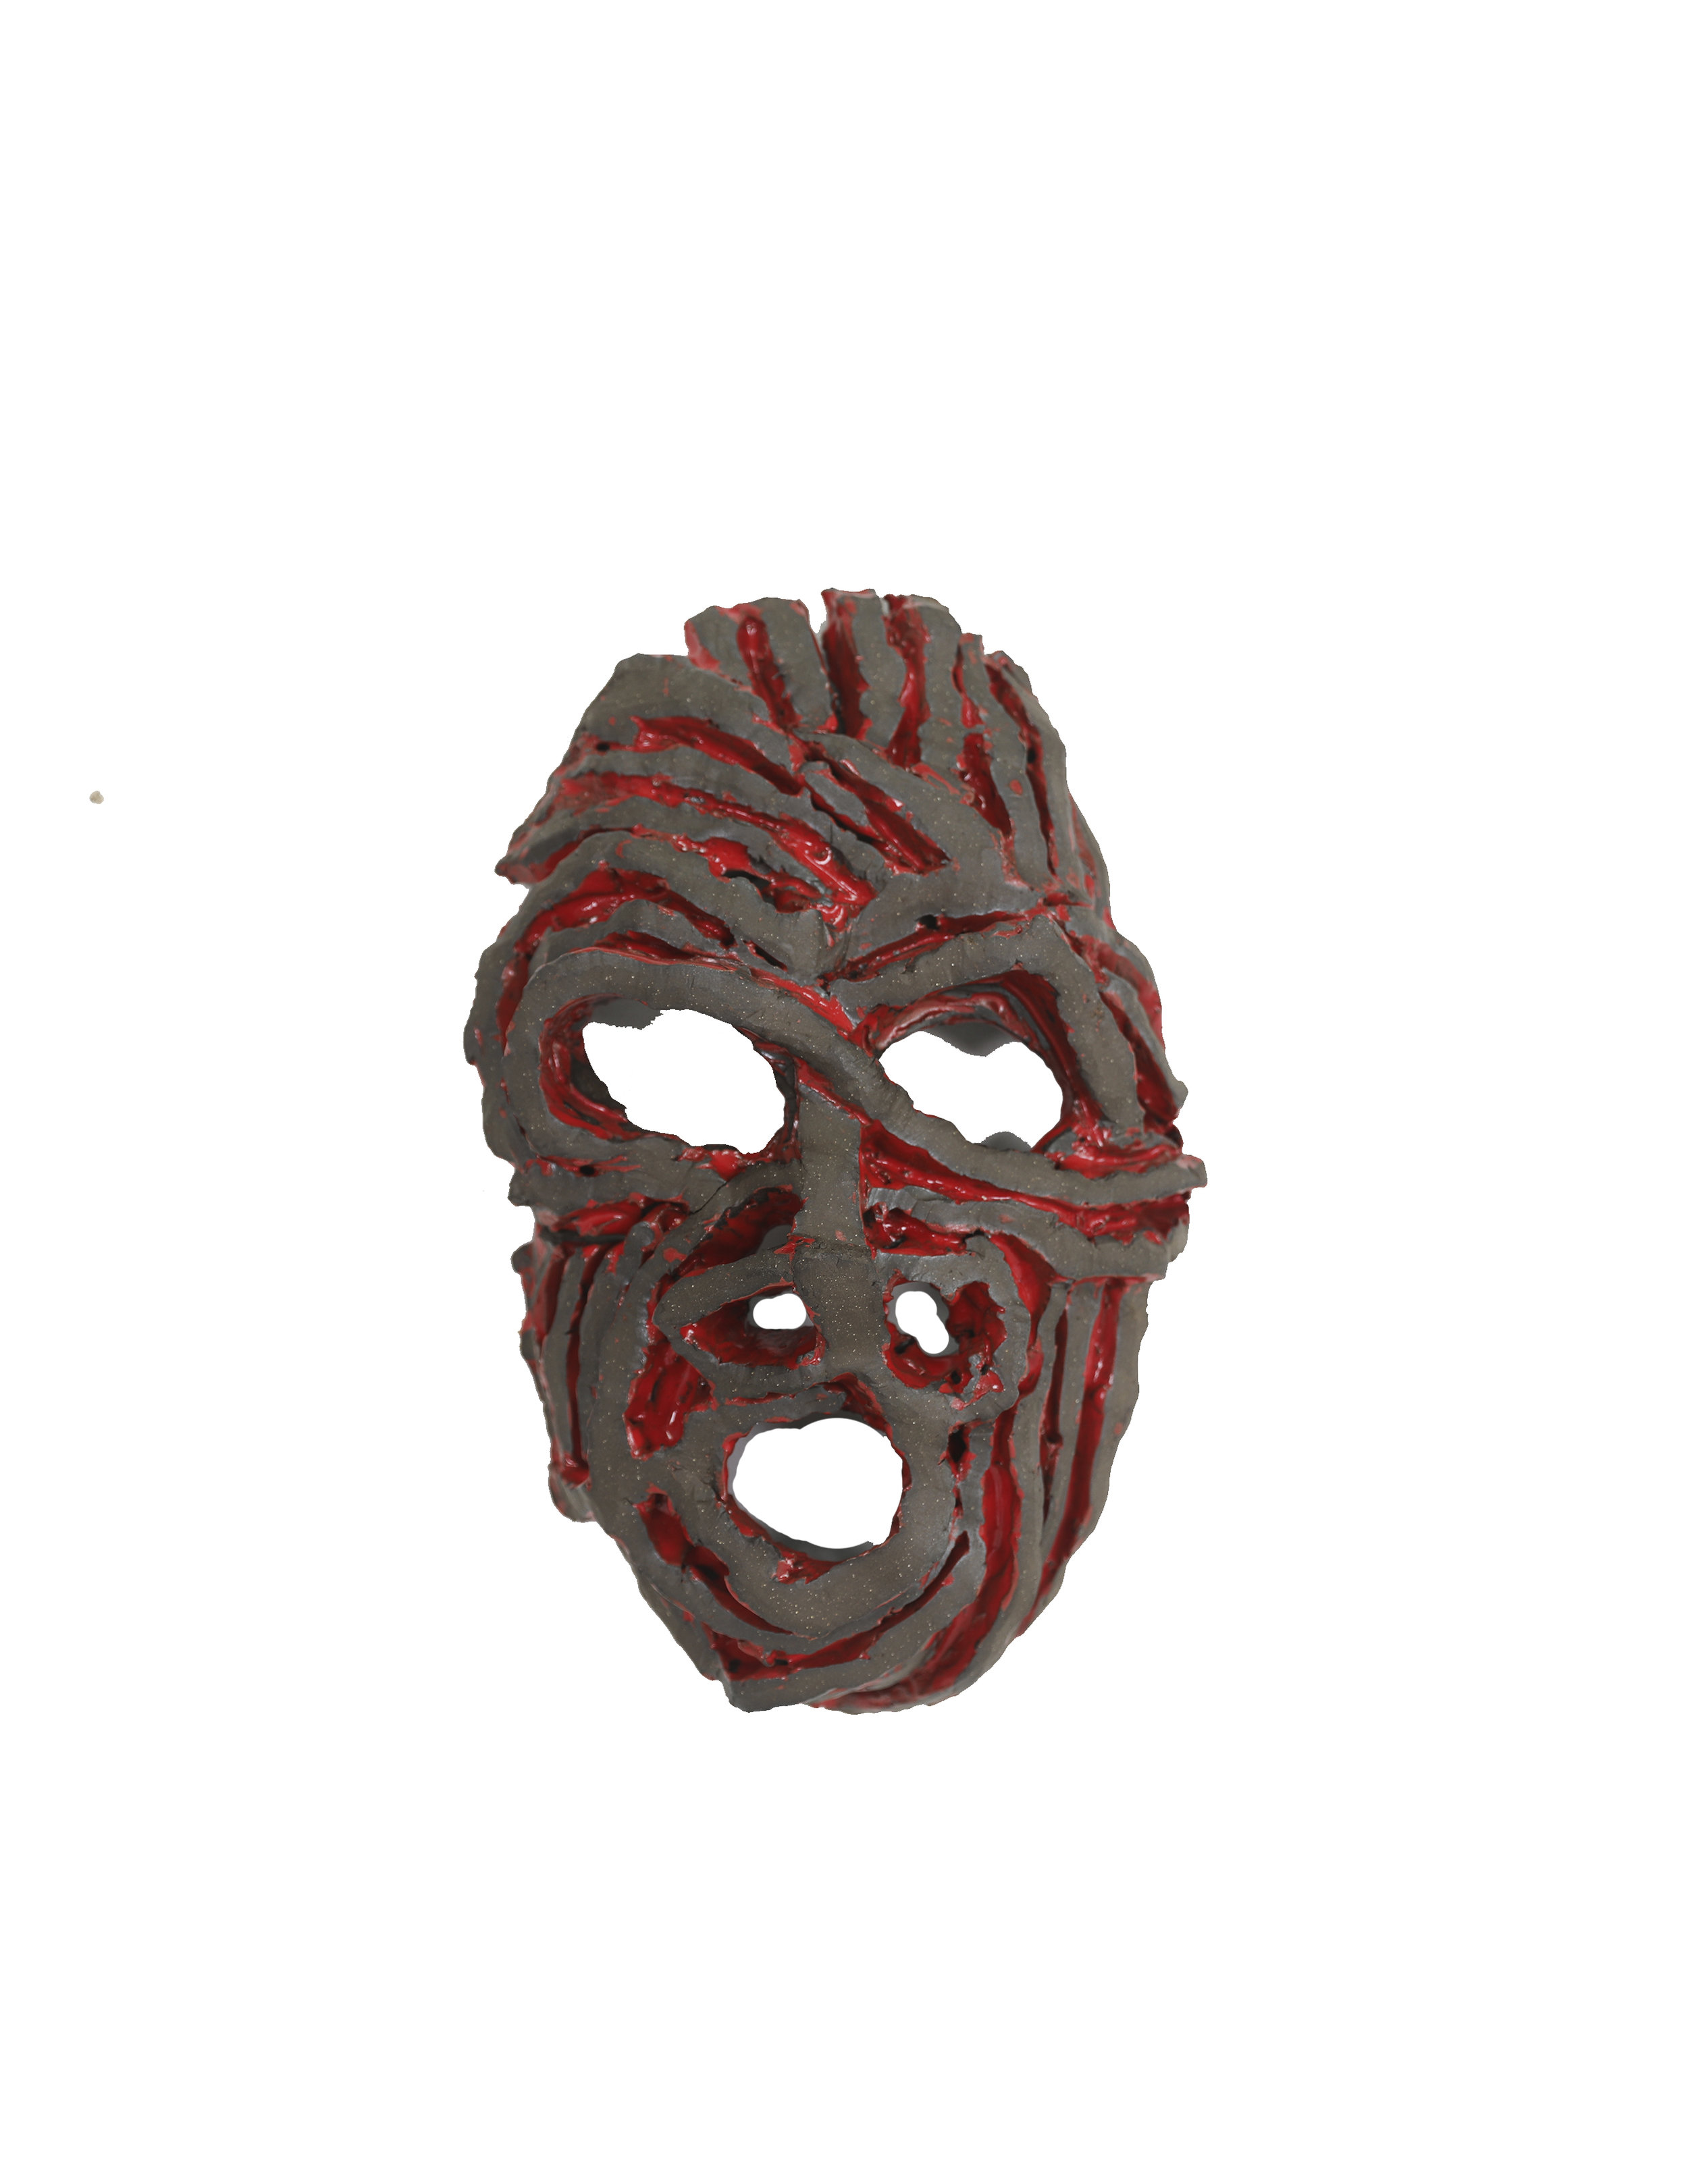 Armstrong, Zachary - TBI_ZA18.08.16 - Red mask #1 - (Res300).jpg